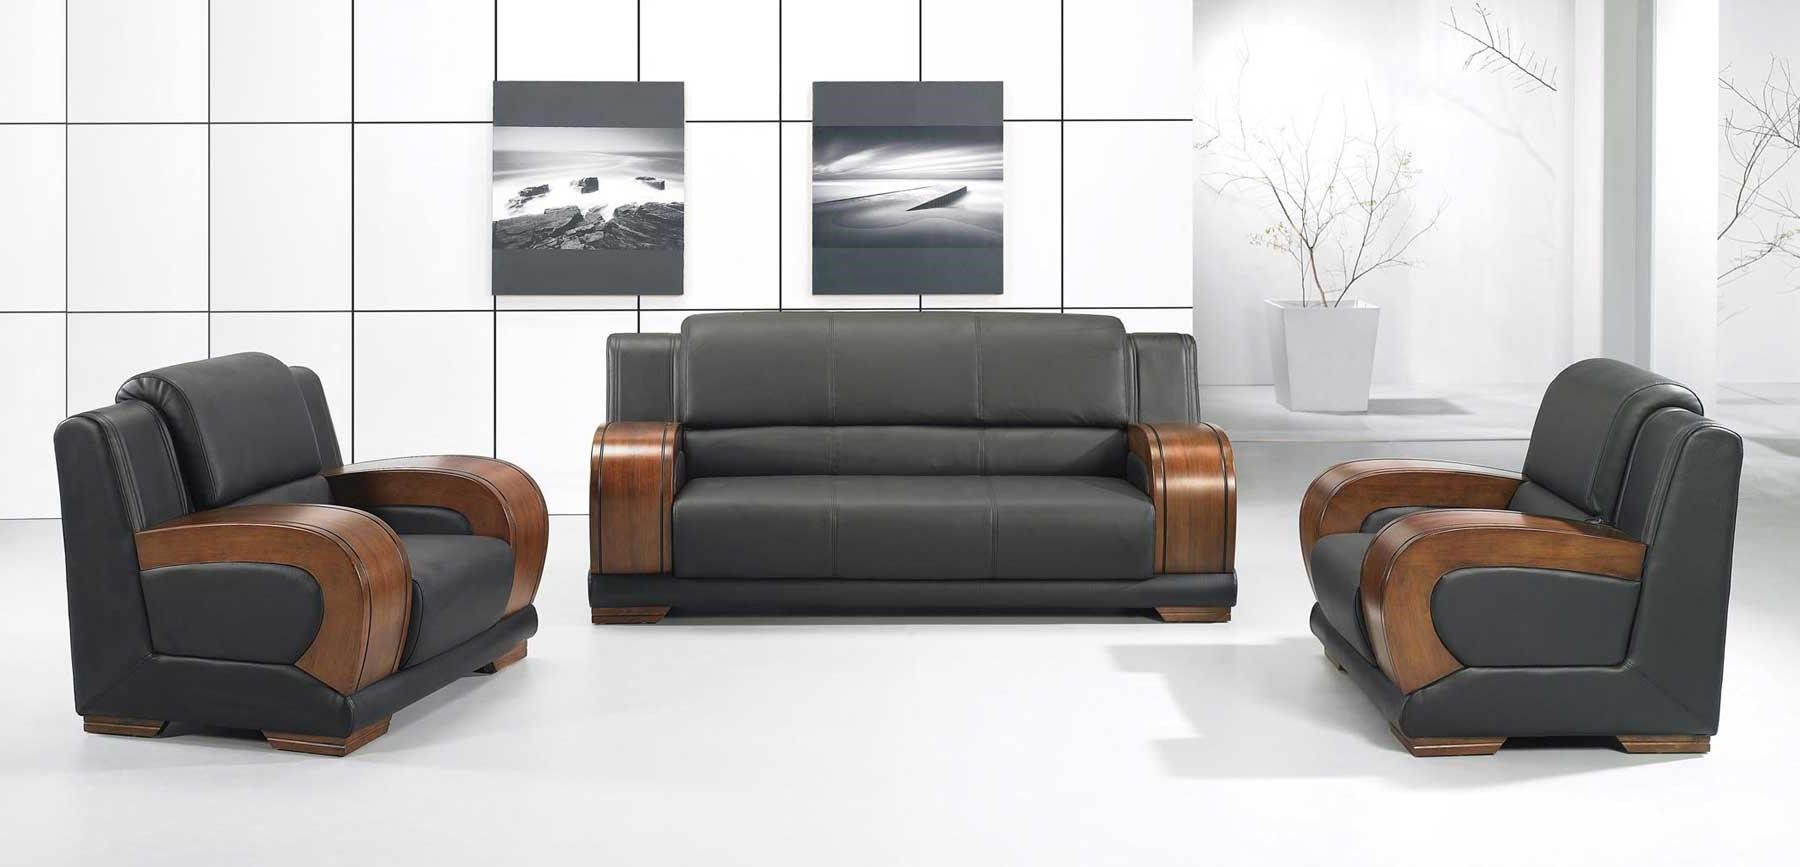 wooden-sofa-designs-latest-bdesignsb-of-bwooden-sofab-bb